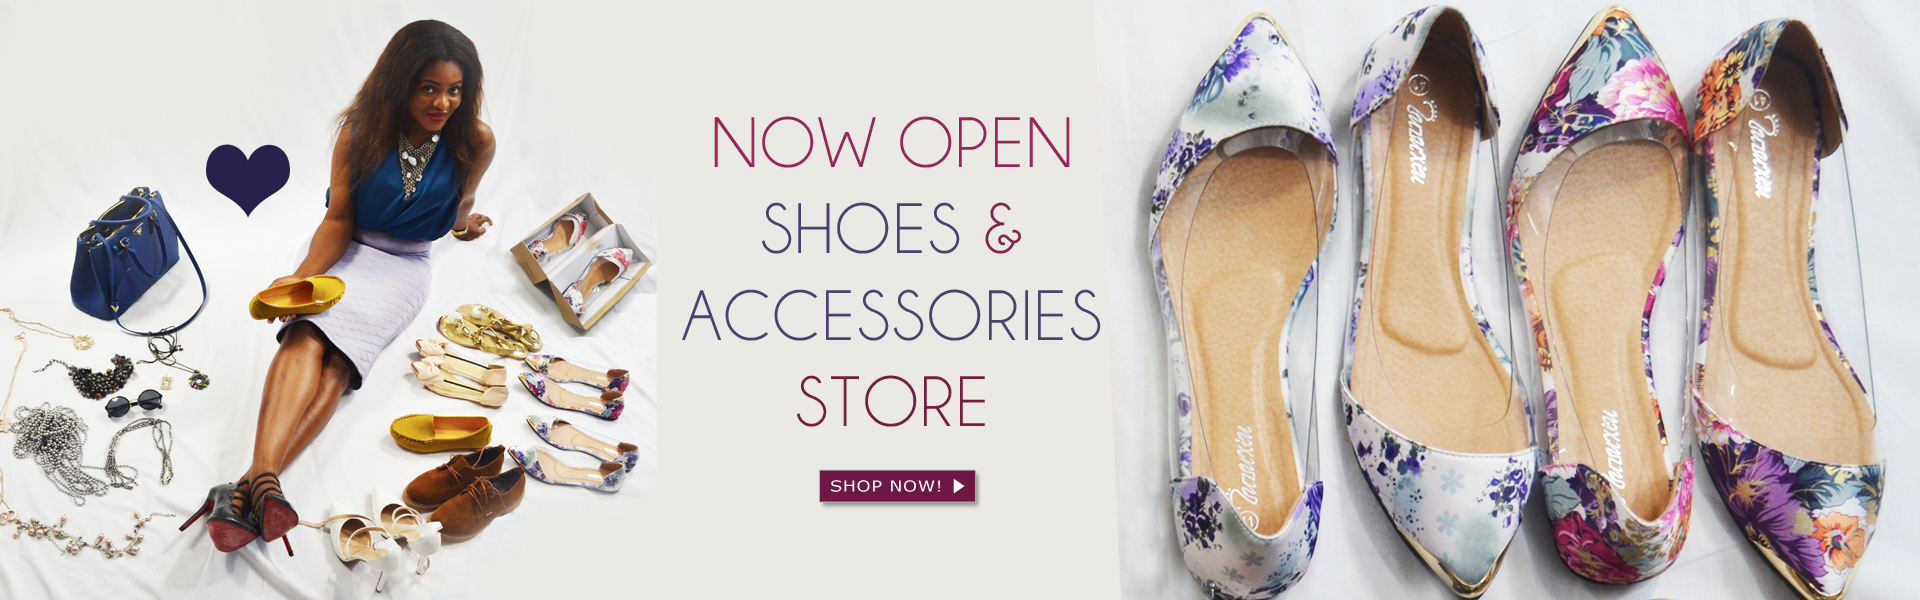 Shoes and Accessories Shop Now Open